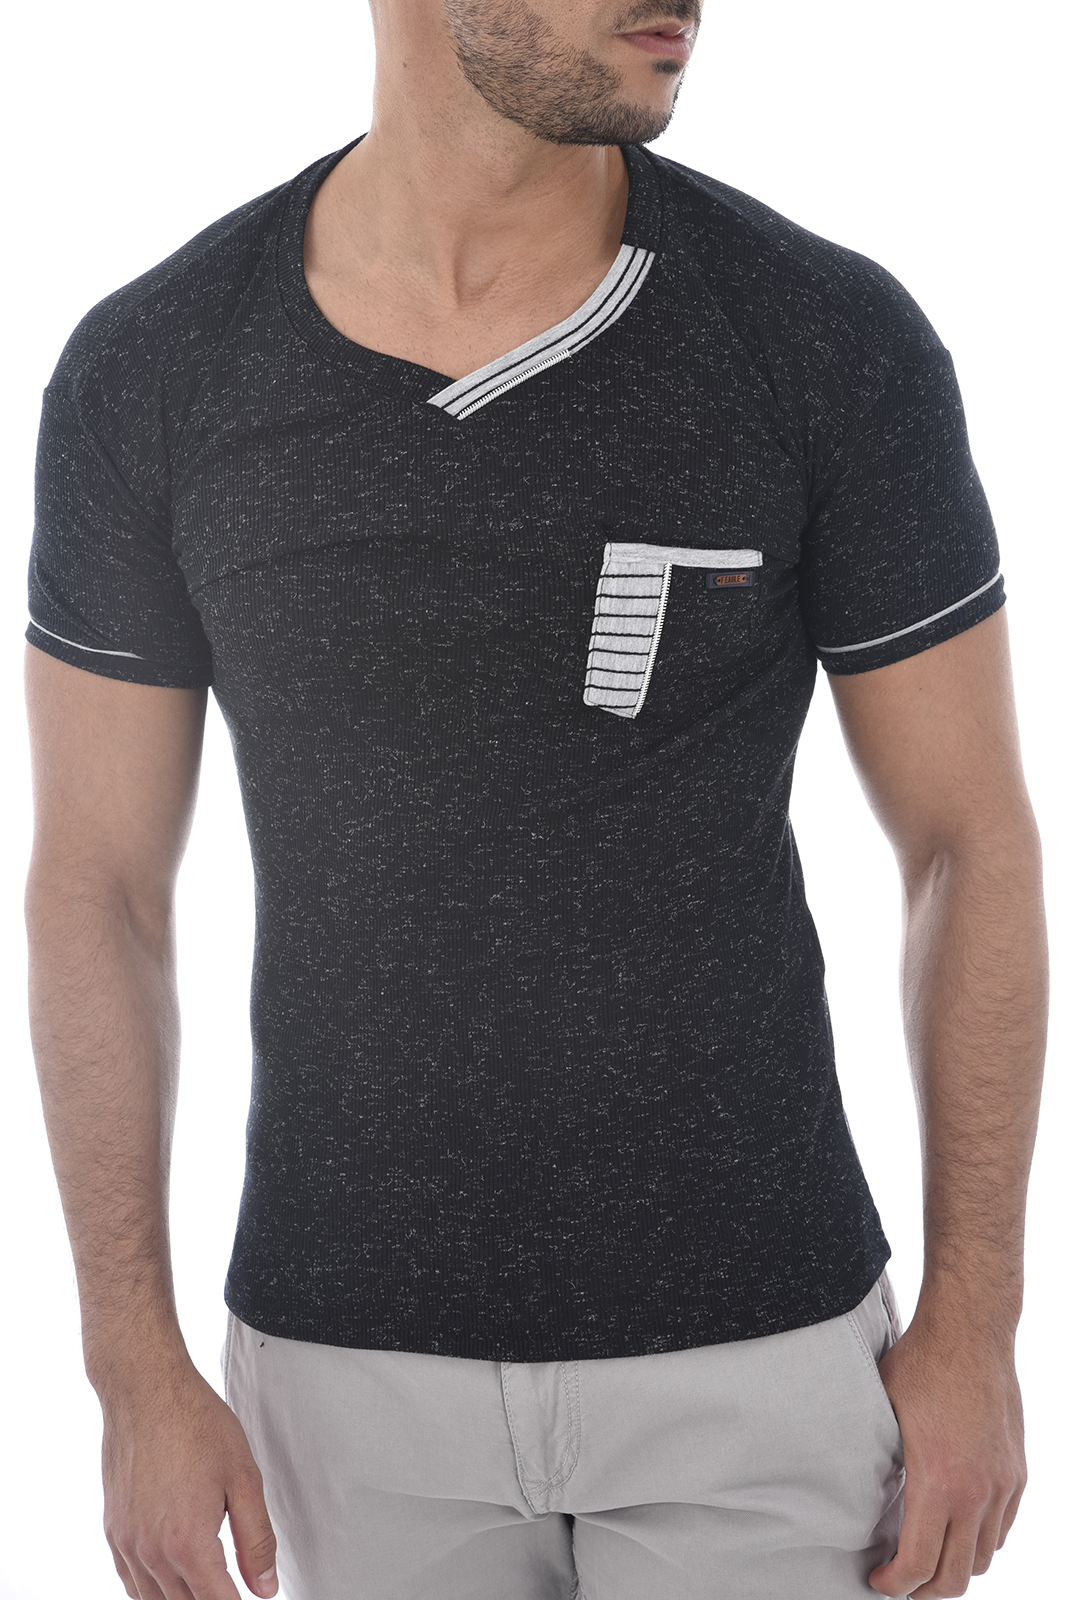 Tee-shirts  French eagle FE-17002 ANTHRACITE